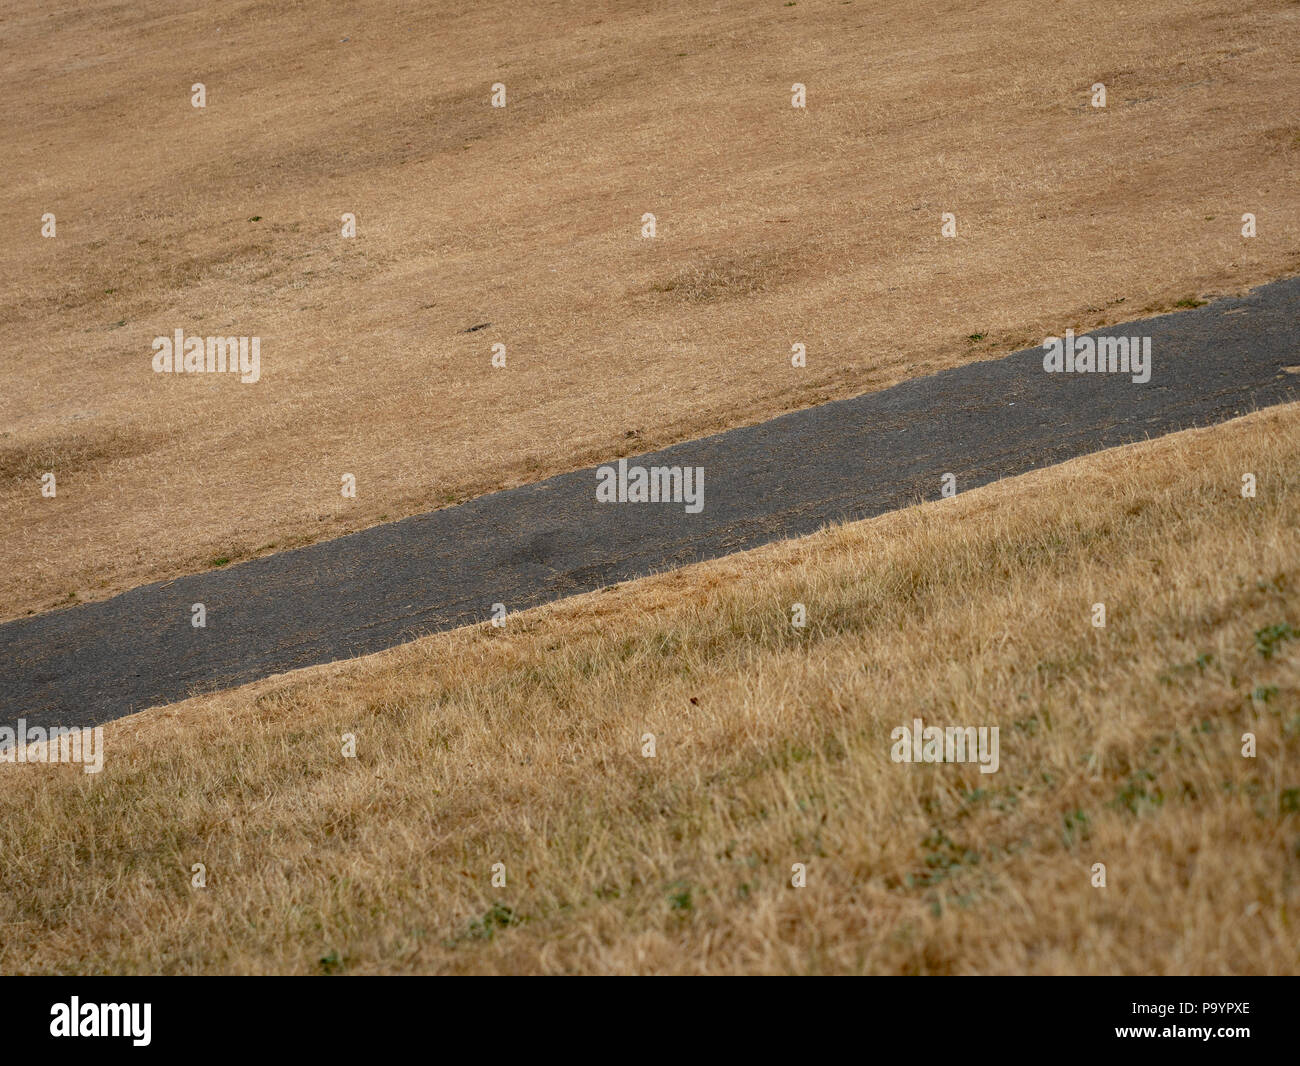 Dry brown grass field in a public park due to extreme hot weather Stock Photo